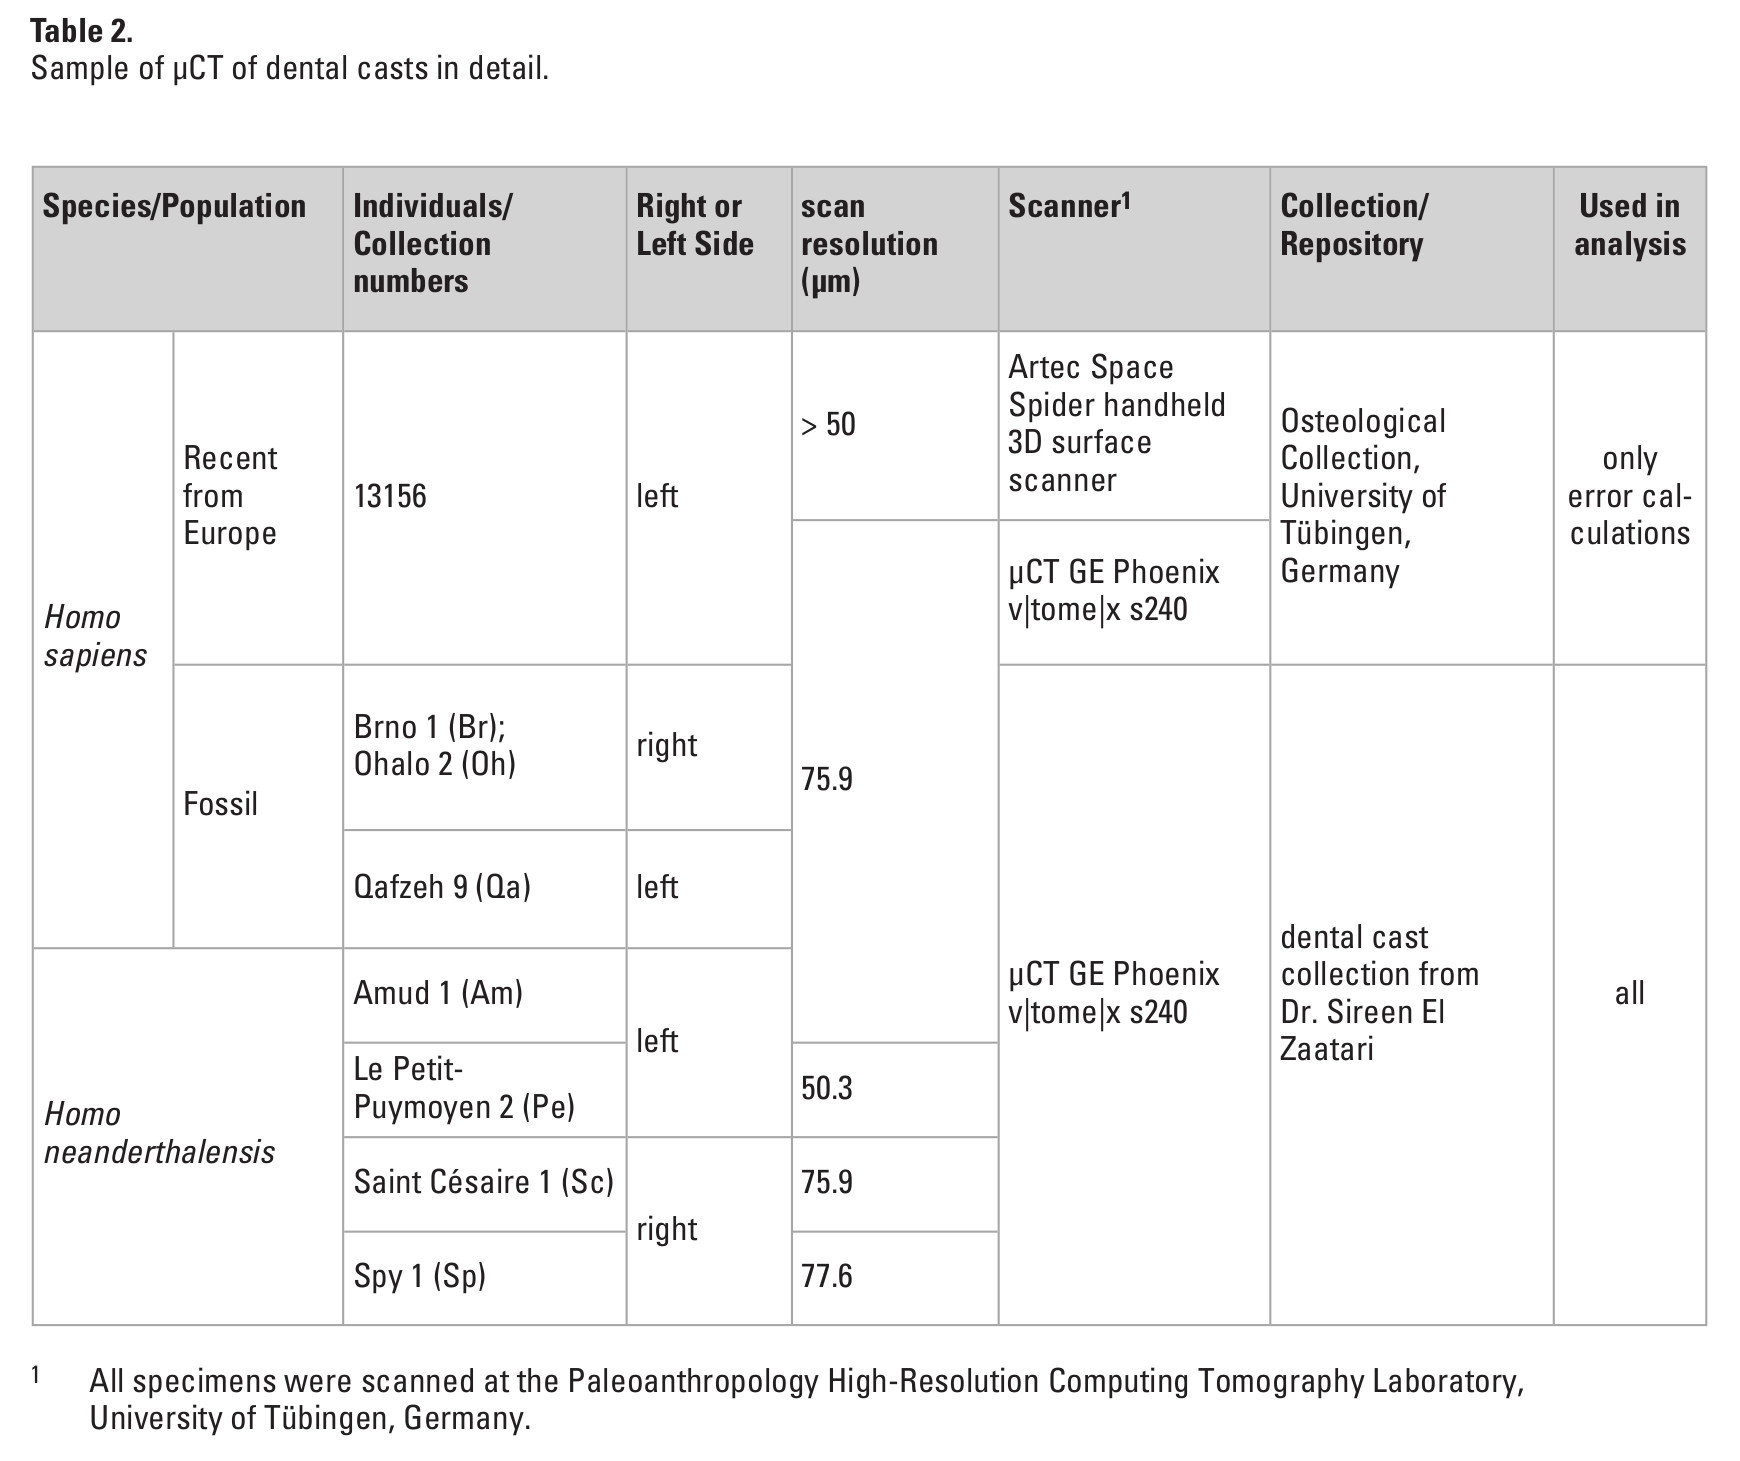 Table 2: Sample of μCT of dental casts in detail.